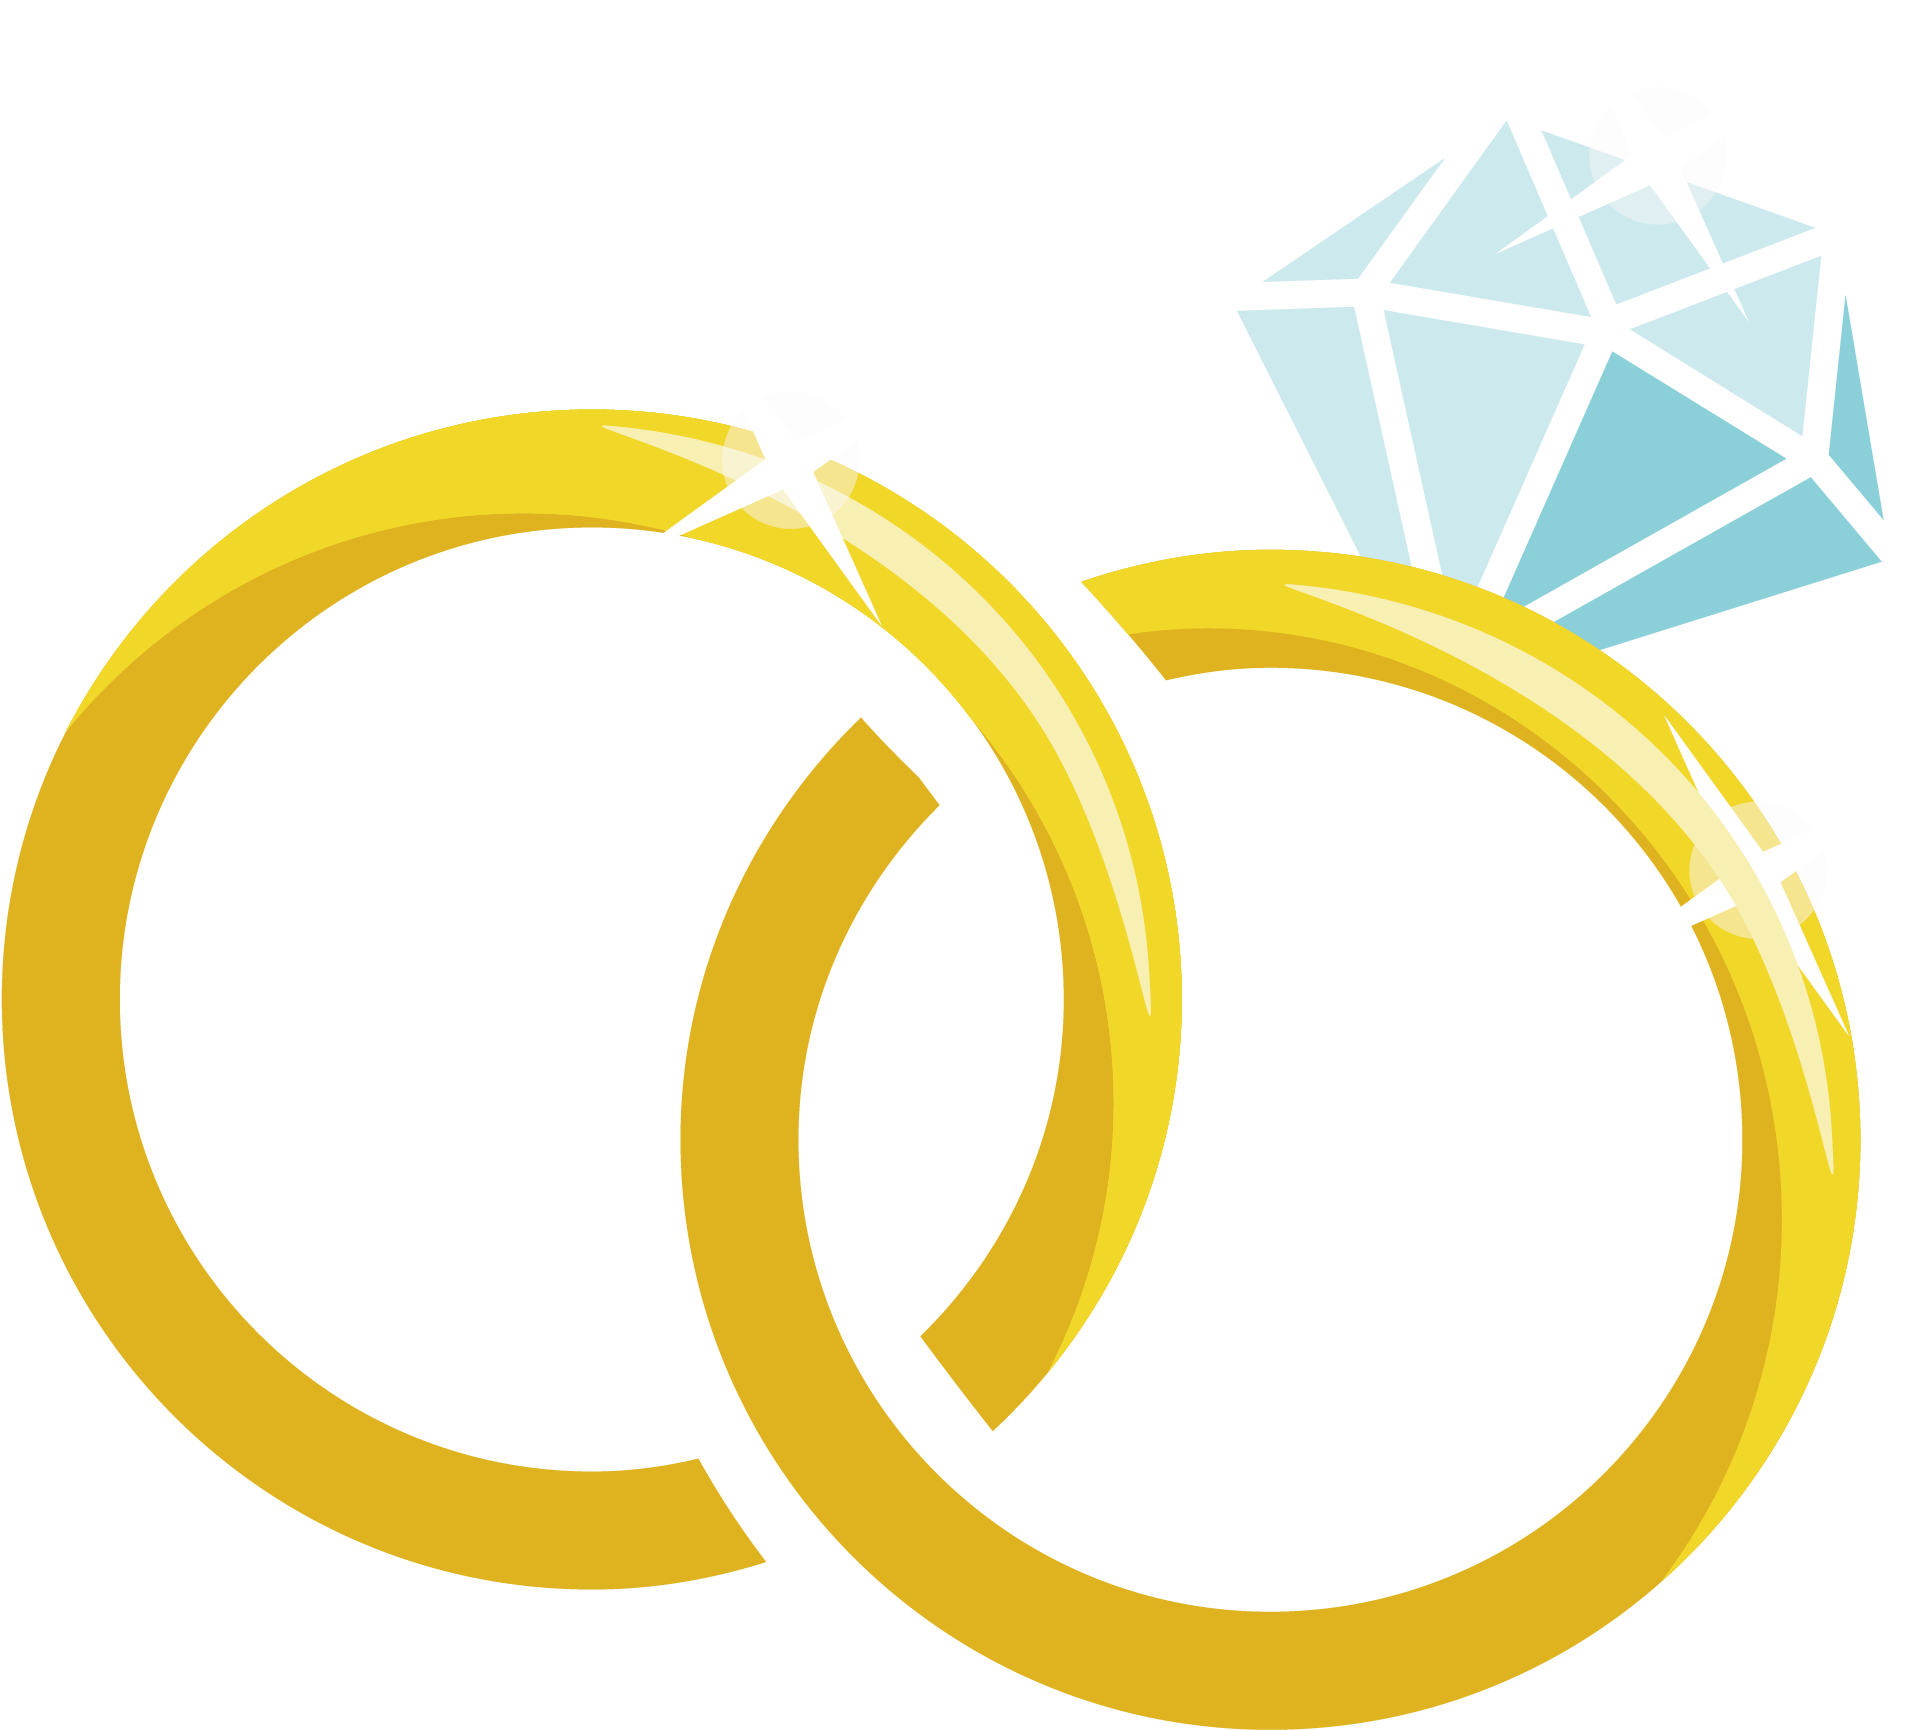 Wedding Ring Png Clipart Full Size Clipart 3731374 Pinclipart